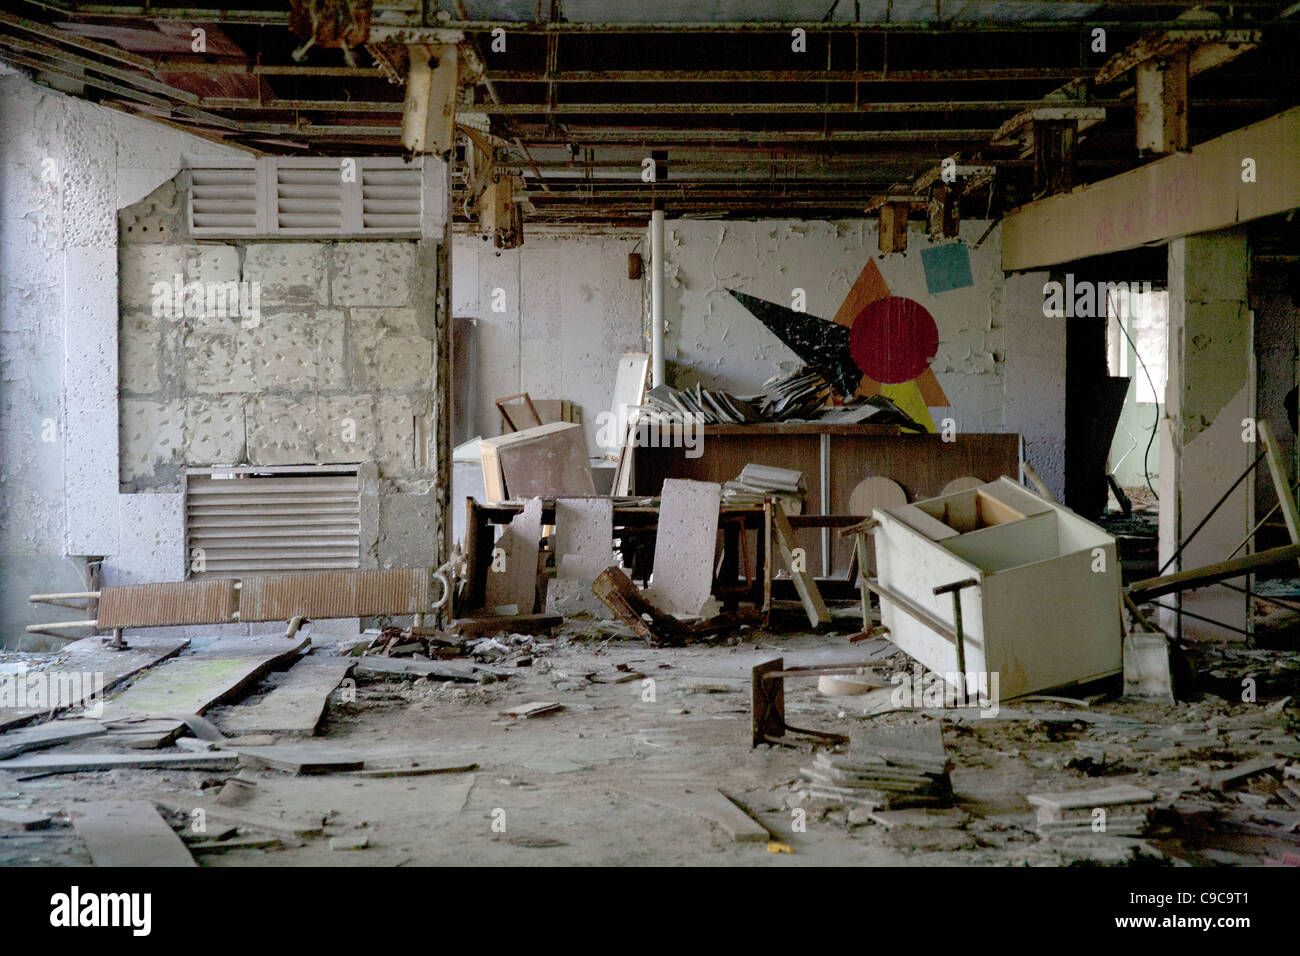 Vandalised and looted classroom in the Pripyat Middle School Sportivnaya Street, Pripyat Chernobyl exclusion zone - Stock Image